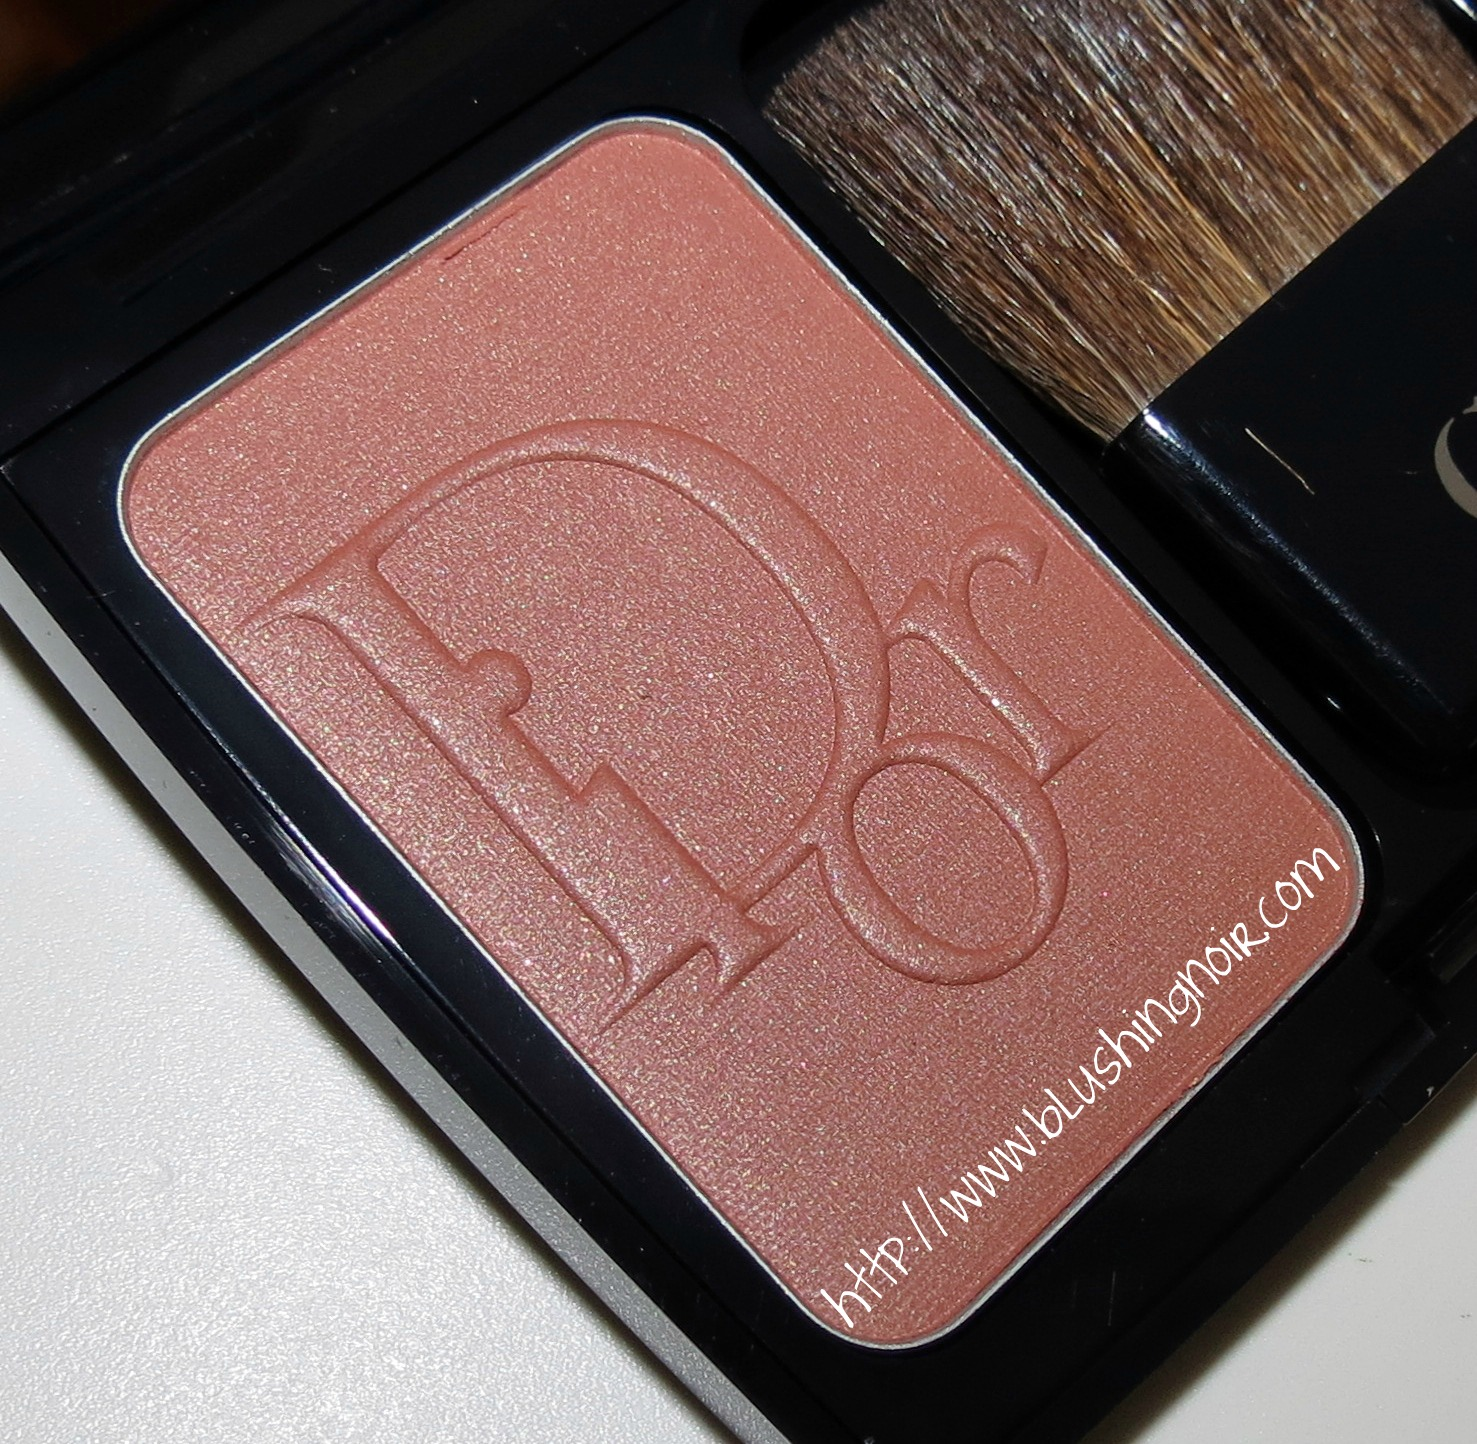 Dior 849 Mimi Bronze Vibrant Color Powder Blush Swatches ...